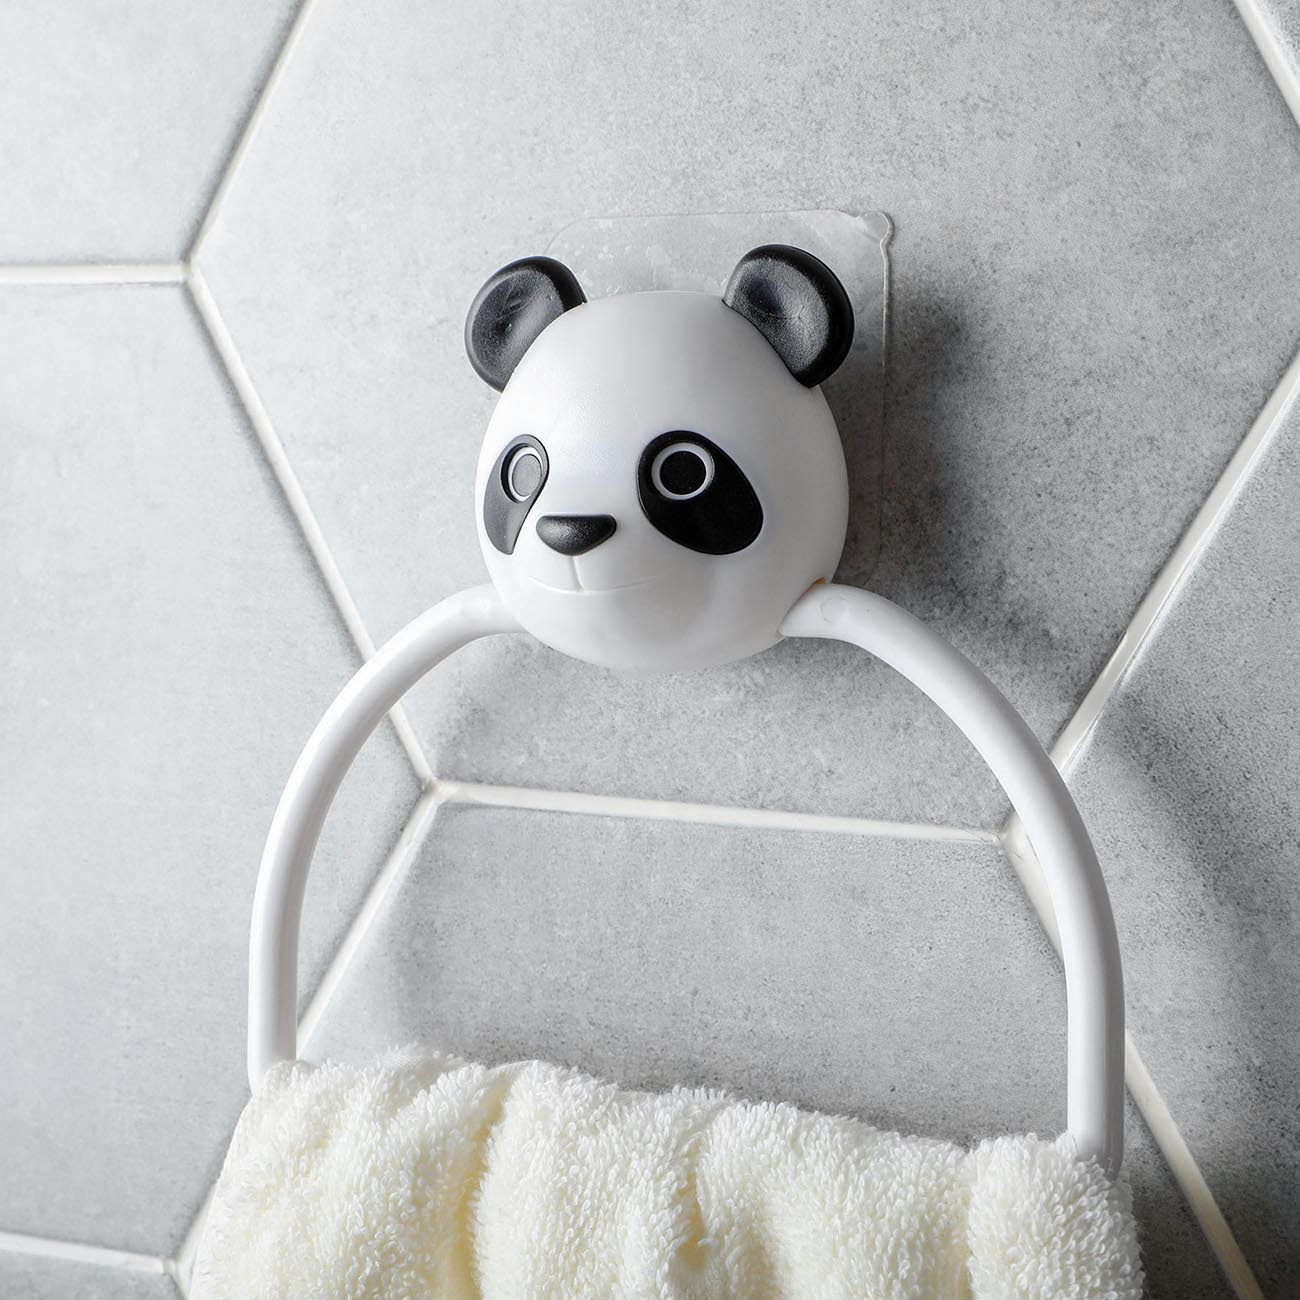 1pc Cartoon Towel Holder Rack Bathroom Organizer Hanging Towel Bar Bathroom Storage Rack Self Hanger Plastic Towel Ring